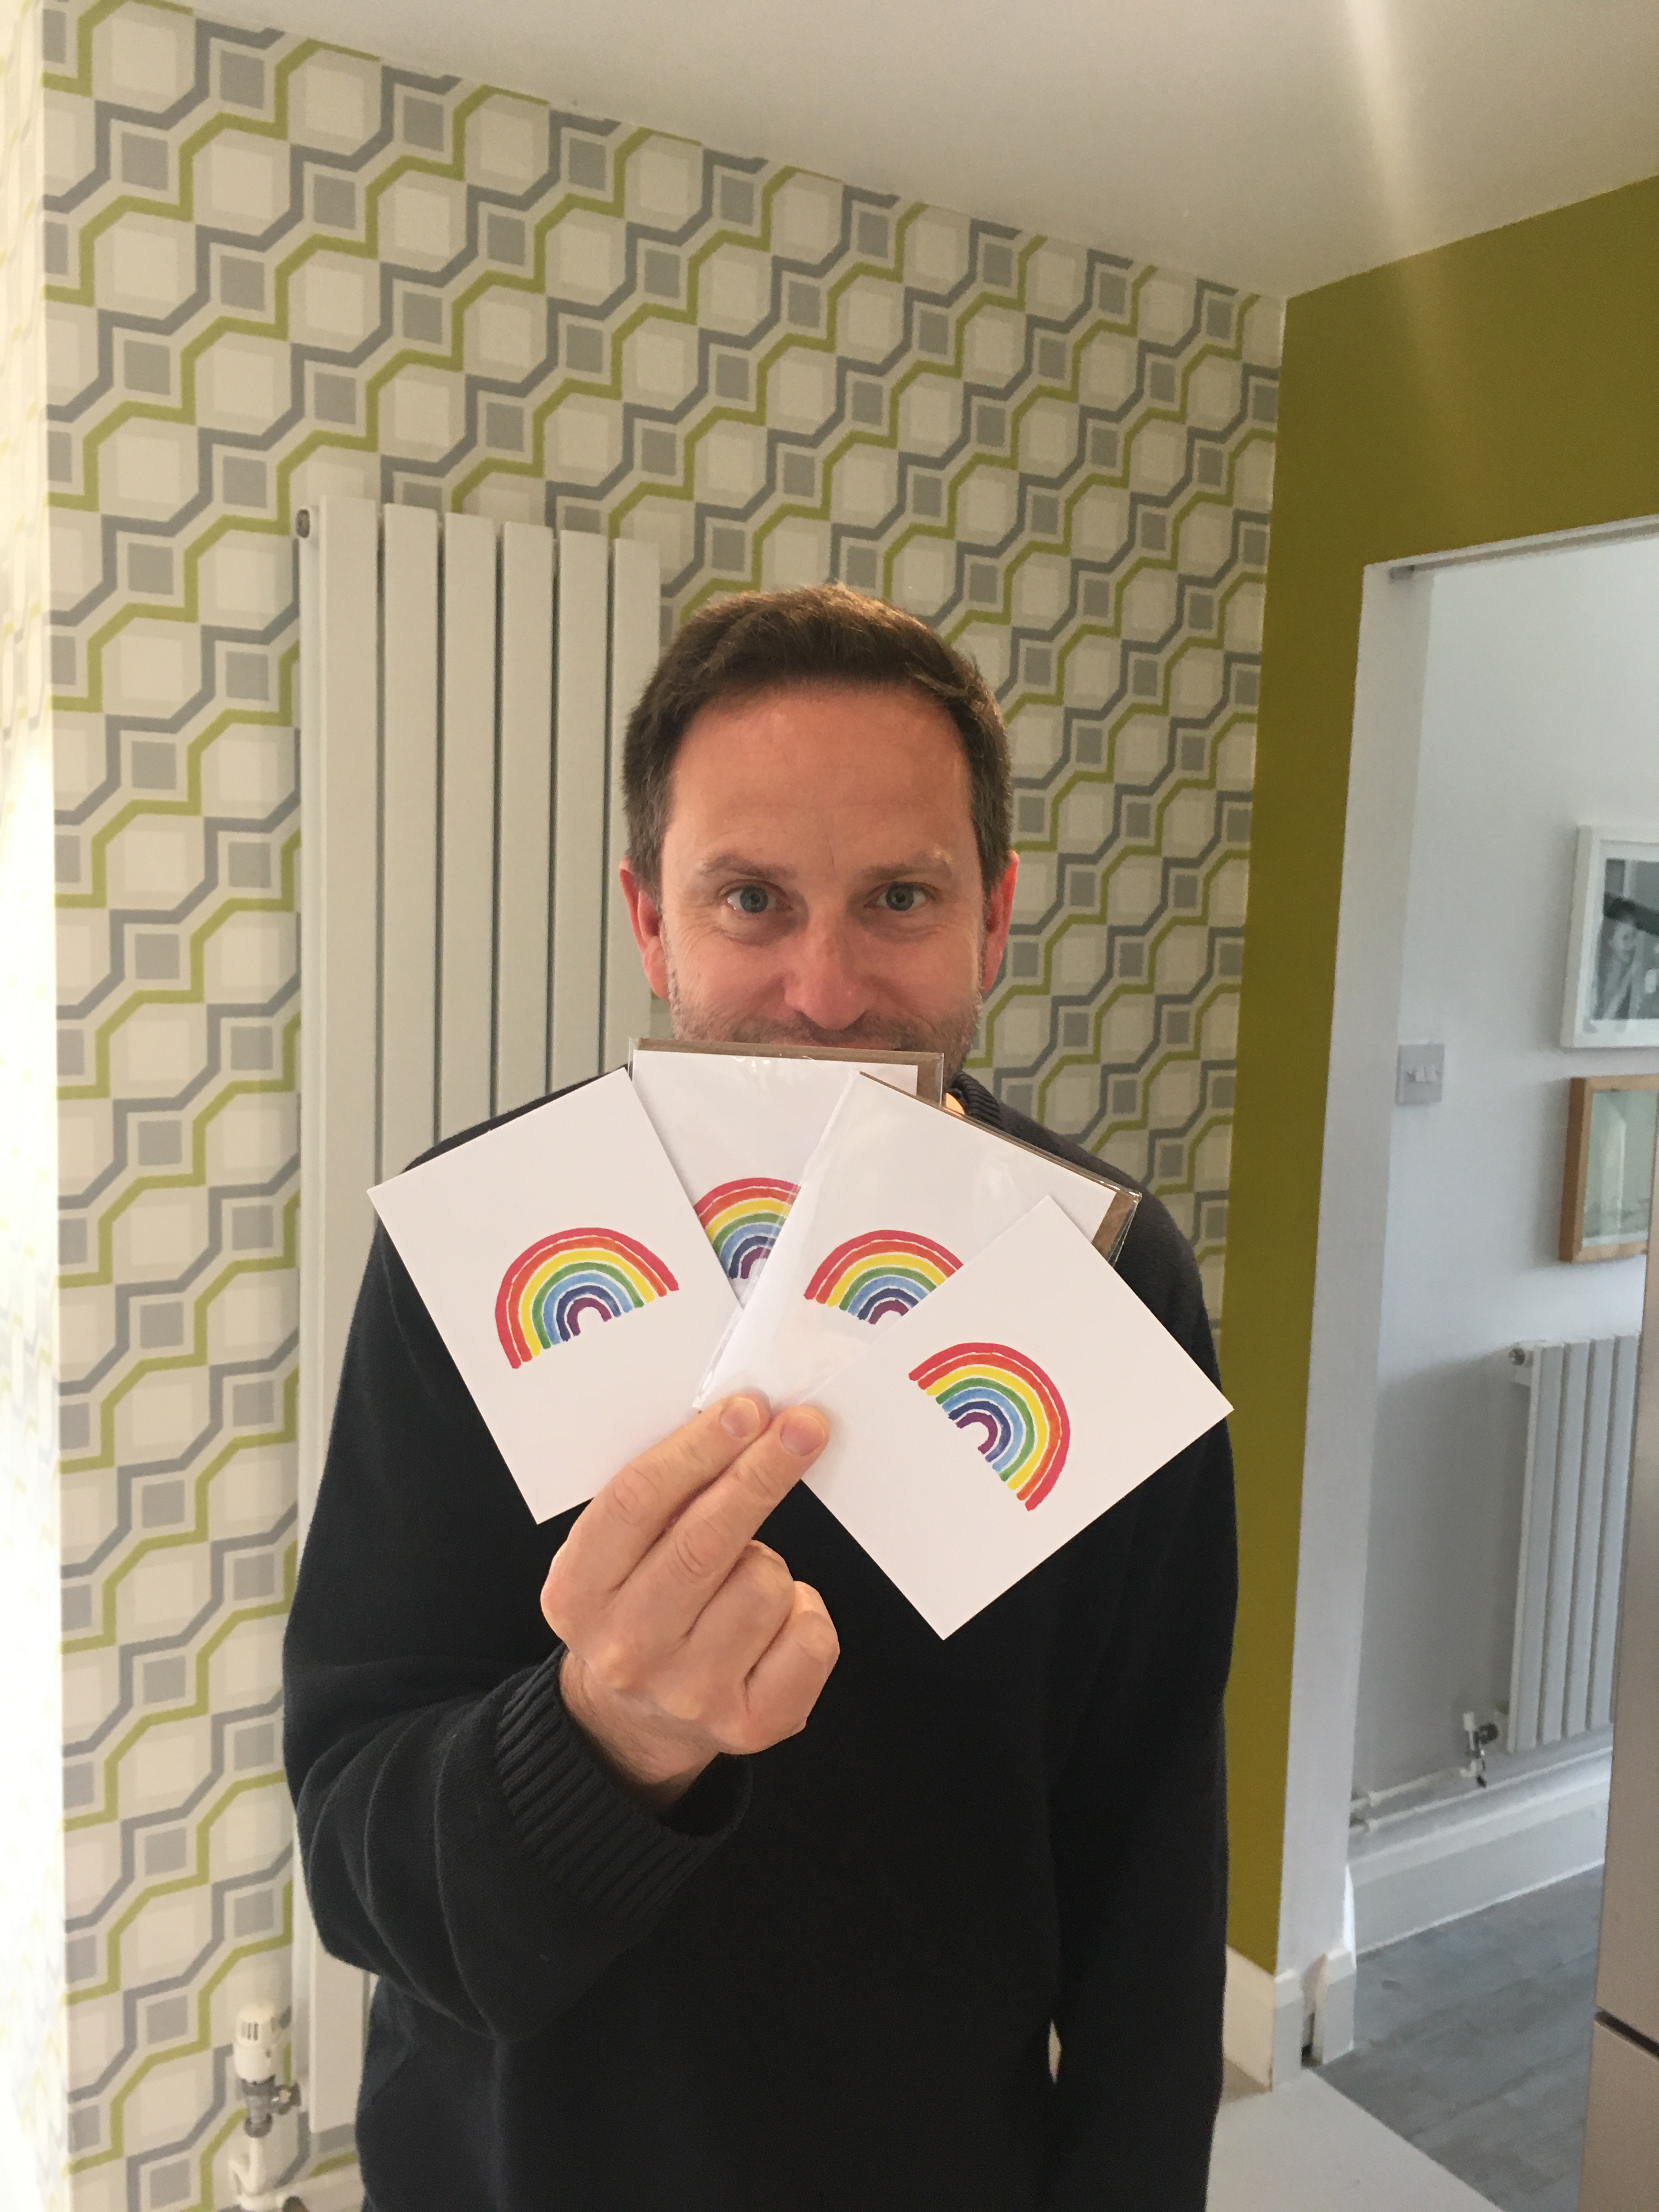 Above: Dominic Early with some of the cards that has been distributed to all neighbours in two streets close to the family home in Canterbury.